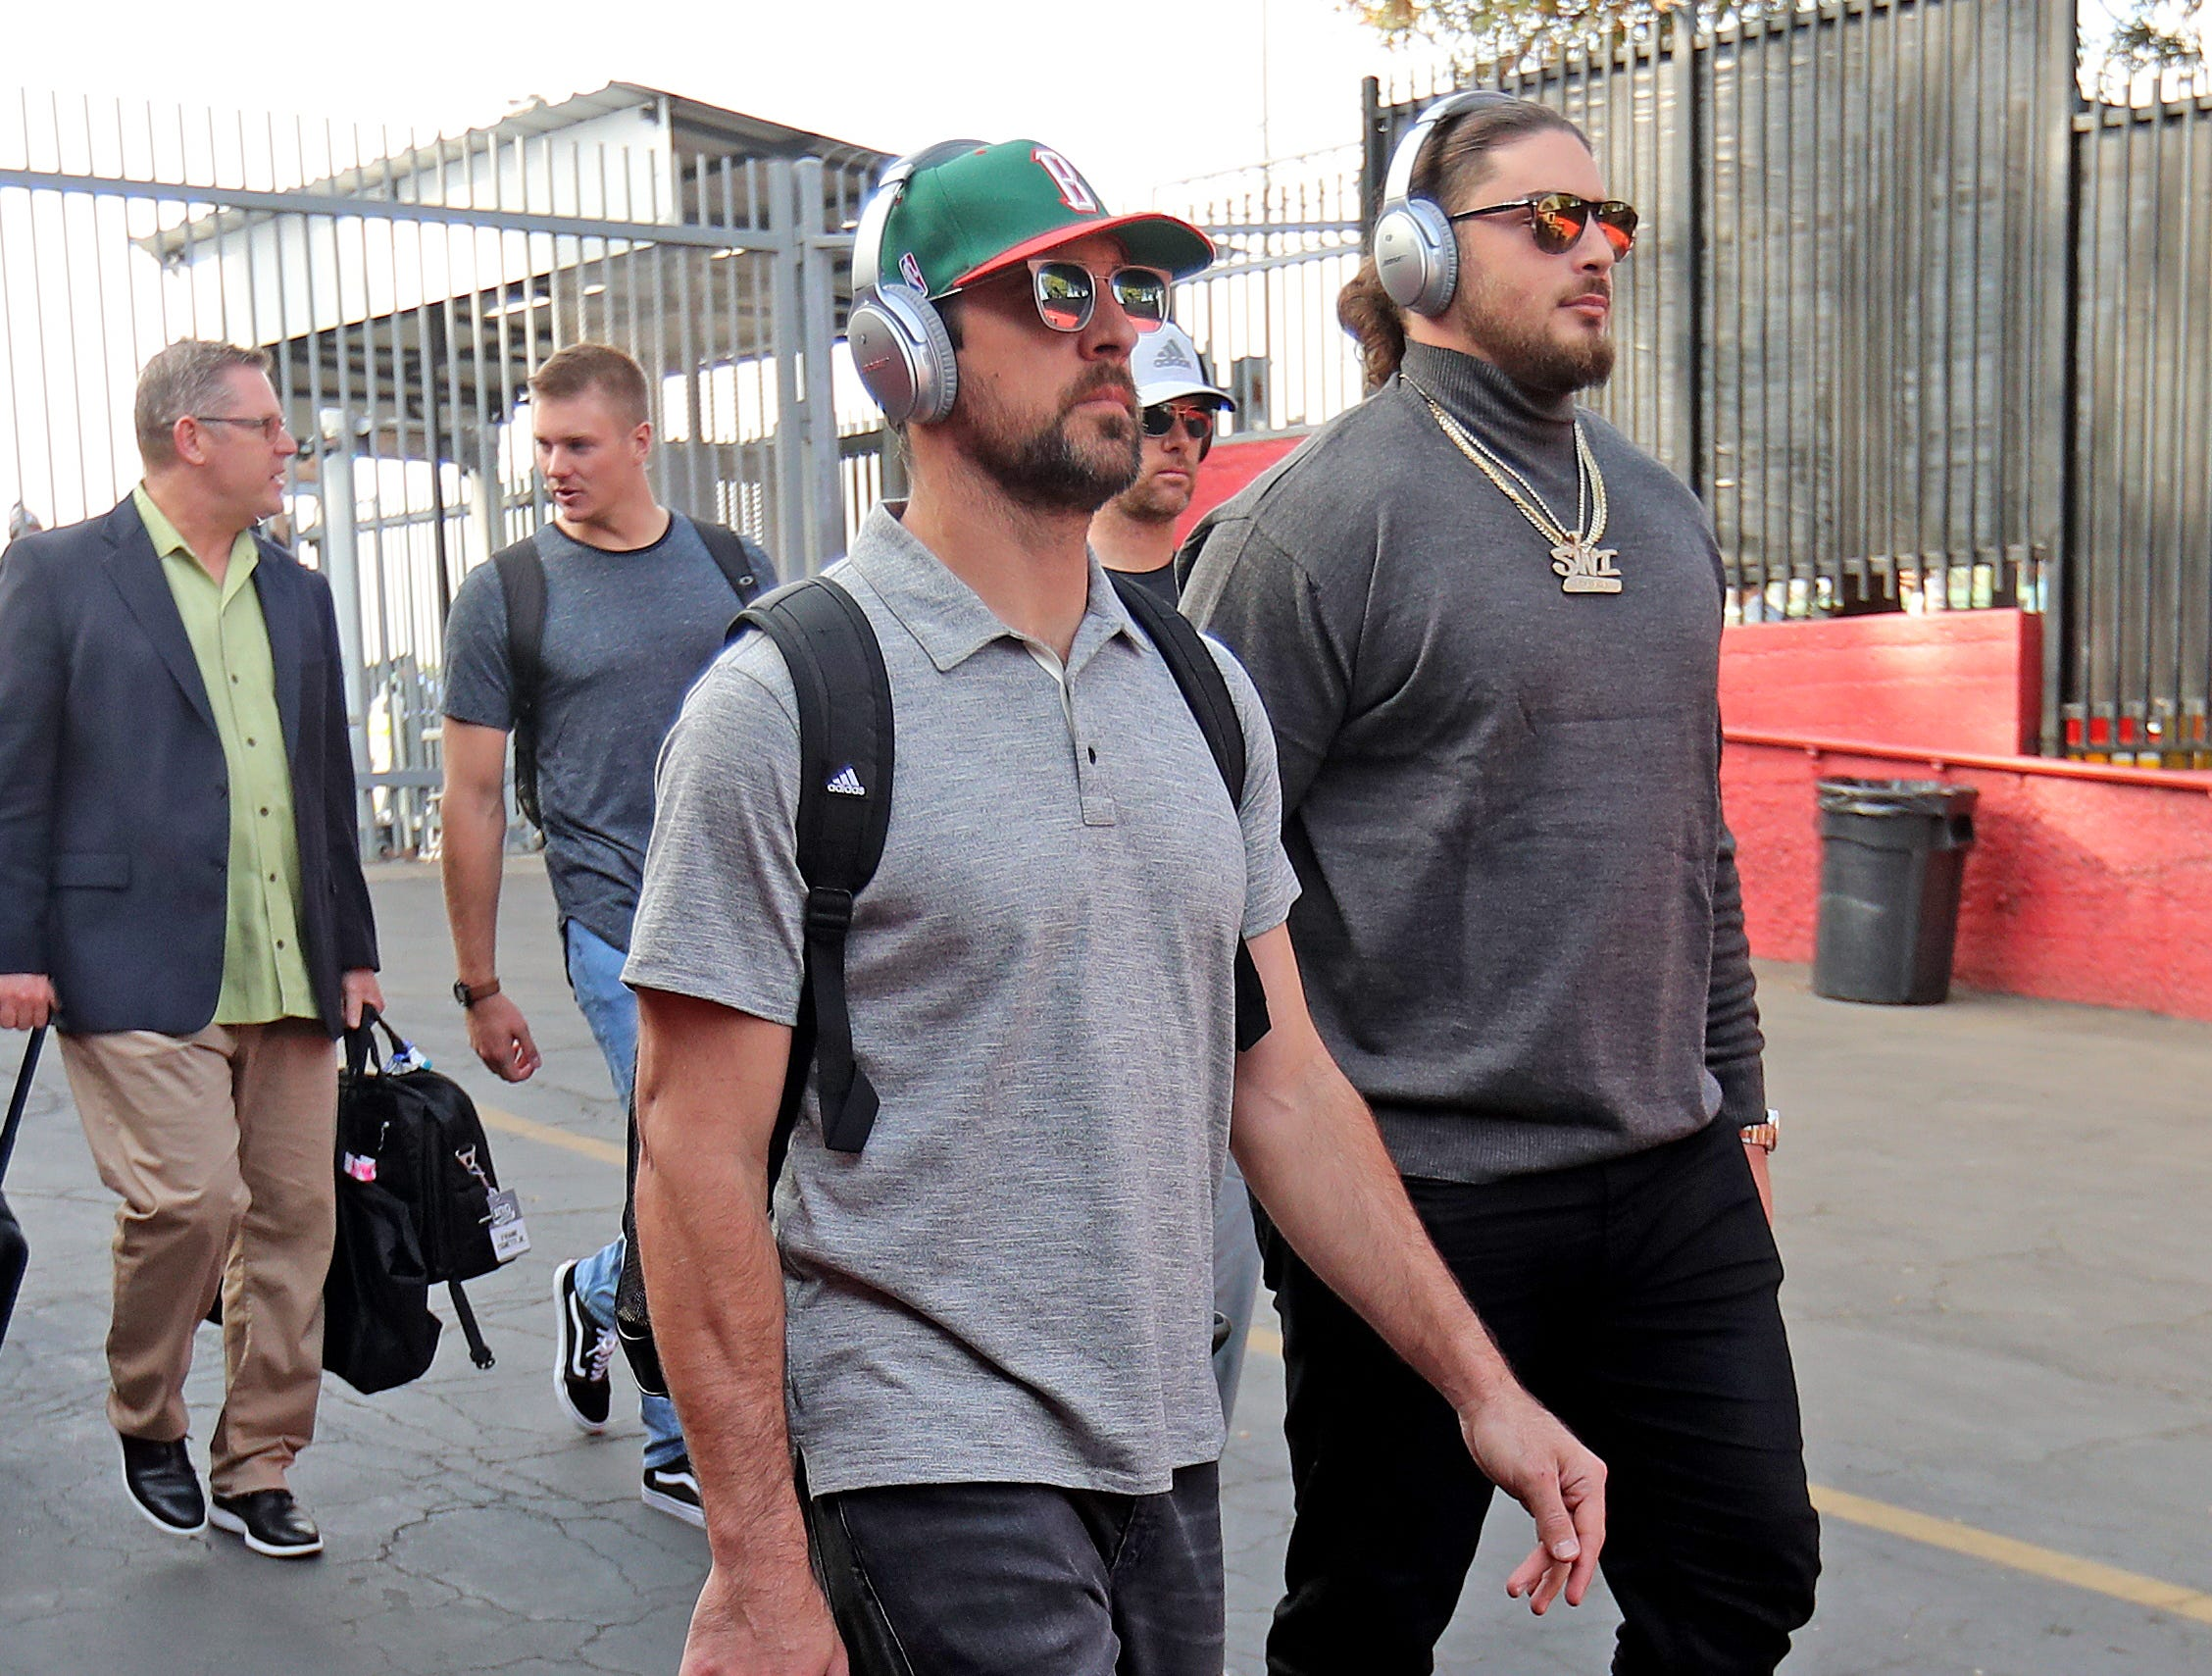 Green Bay Packers quarterback Aaron Rodgers (12) and offensive tackle David Bakhtiari (69) arrive for the game against the LA Rams Sunday, October 28, 2018 at the Memorial Coliseum in Los Angeles, Cal. Jim Matthews/USA TODAY NETWORK-Wis